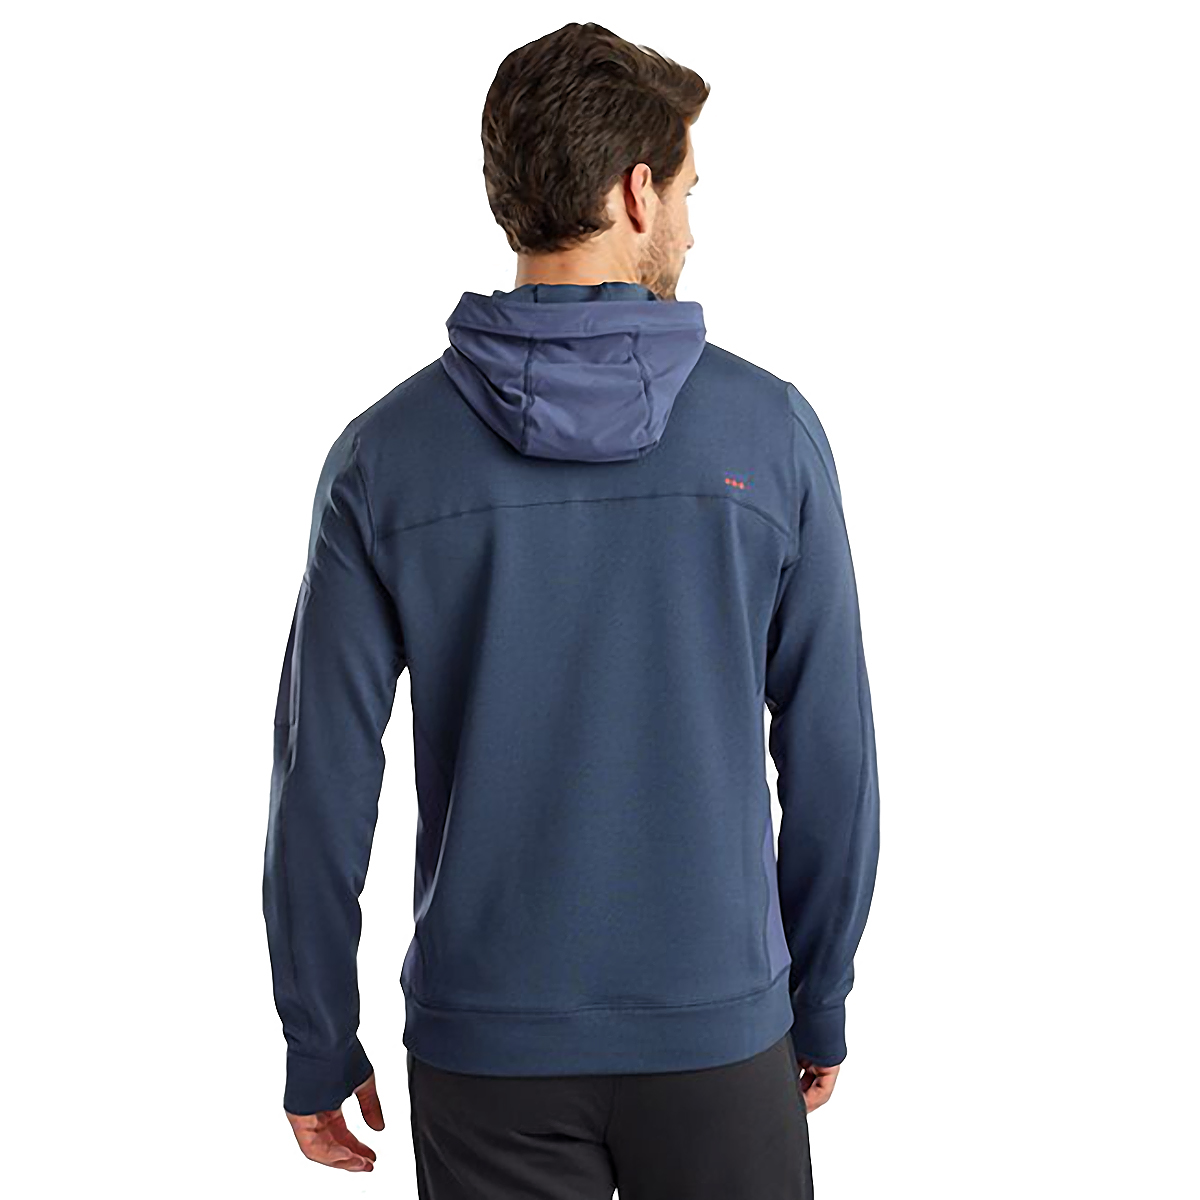 Men's Saucony Daybreak Hoodie  - Color: Mood Indigo - Size: L, Mood Indigo, large, image 2